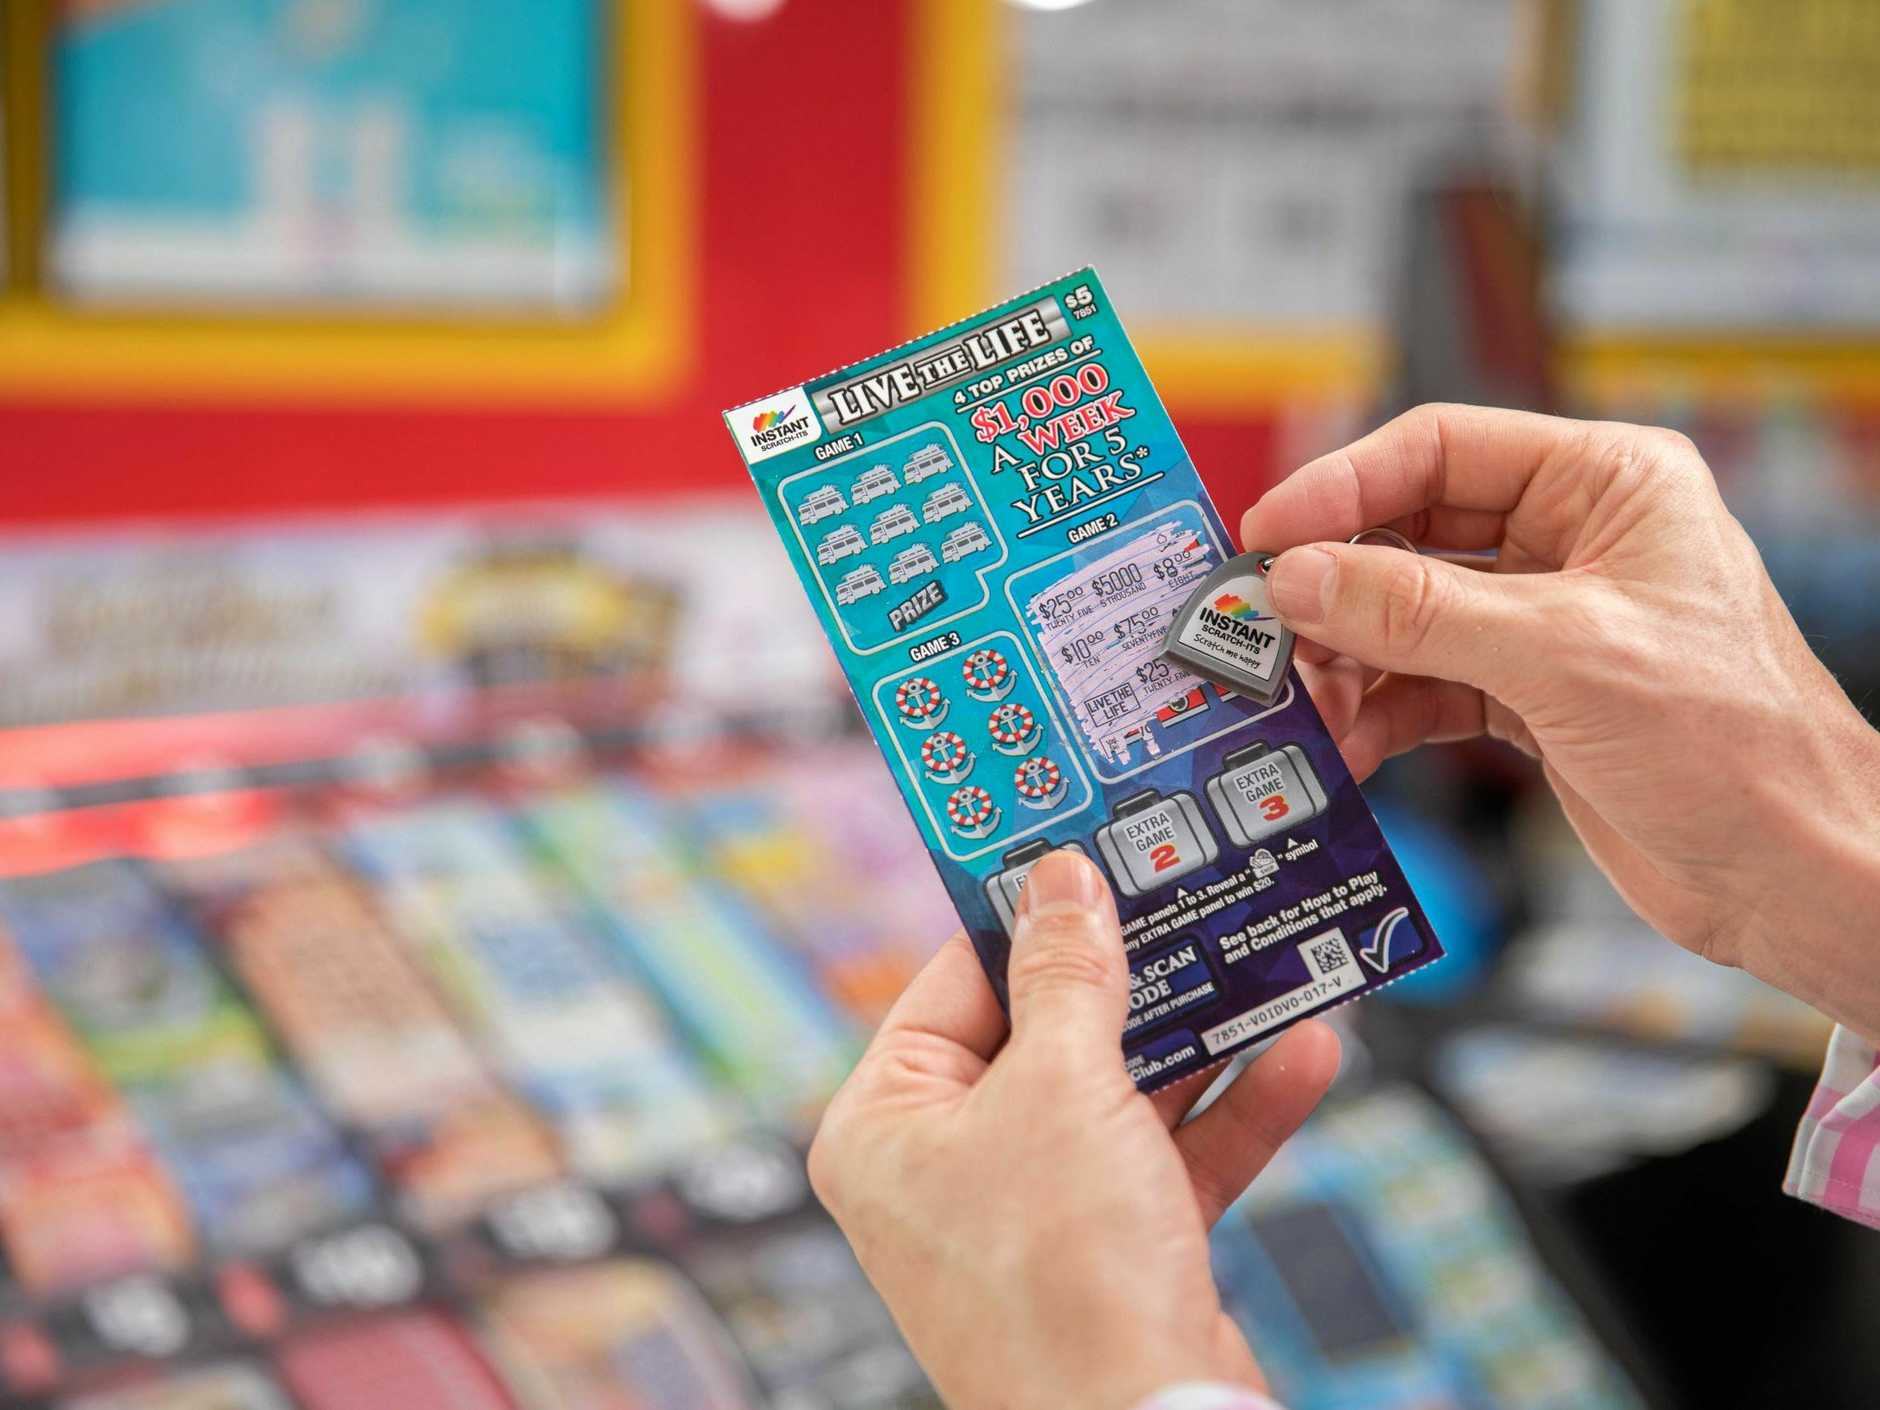 The man, who does not want to be named, won $5000 a week for five years on a $15 Live the Life Platinum Instant Scratch-Its ticket.